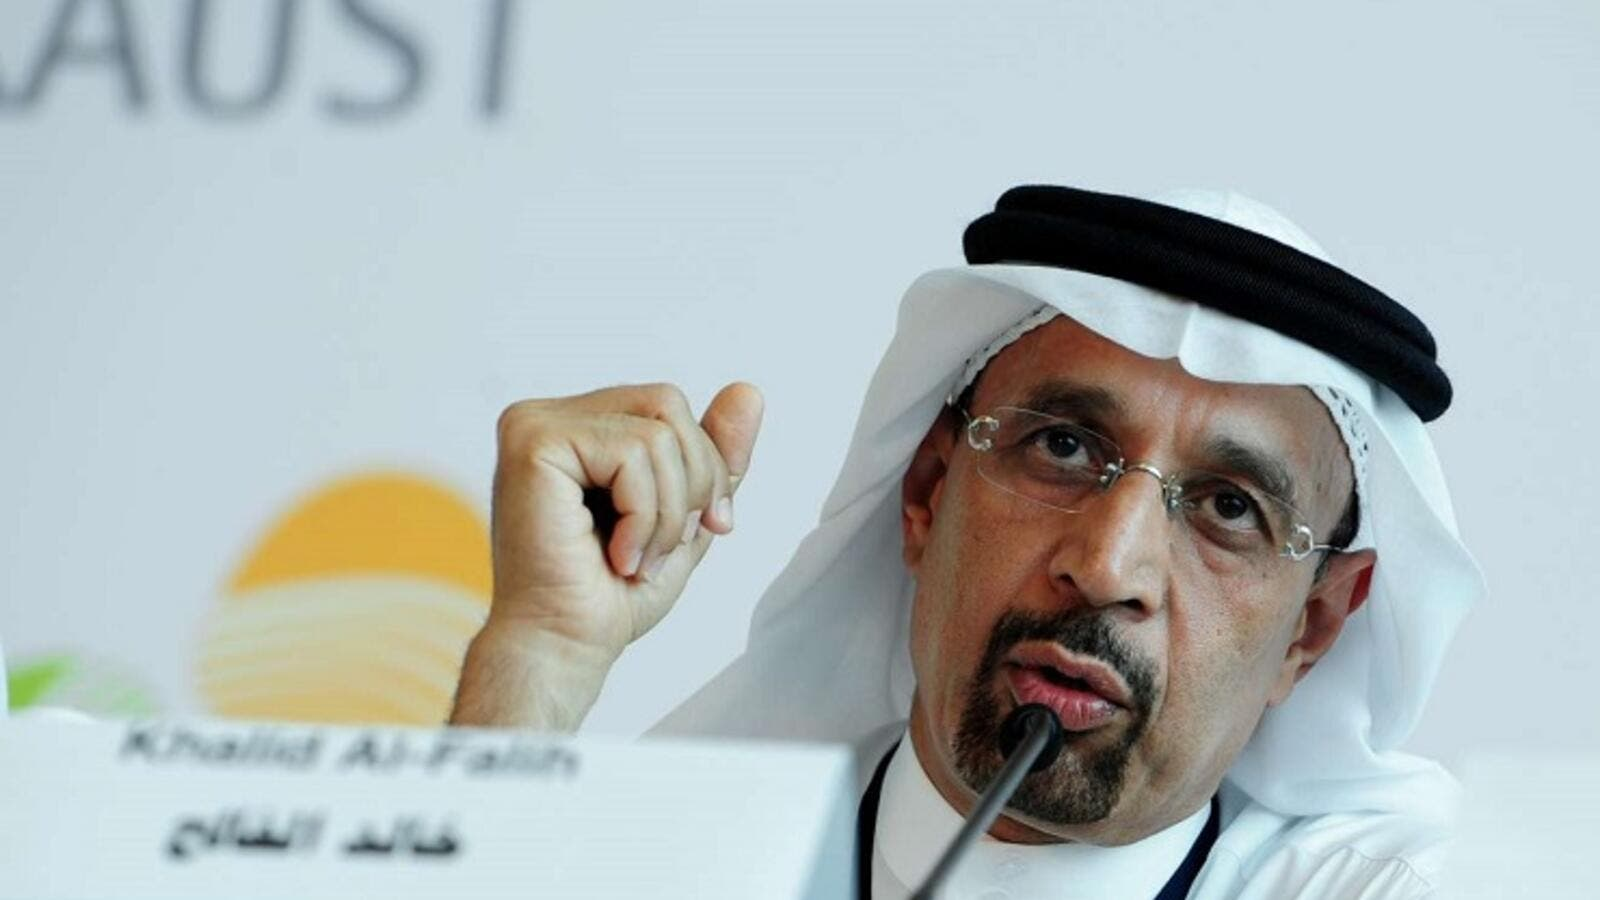 Saudi Minister of Energy, Industry and Mineral Resources, and chairman of Saudi Aramco Khalid Al-Falih. (AFP)